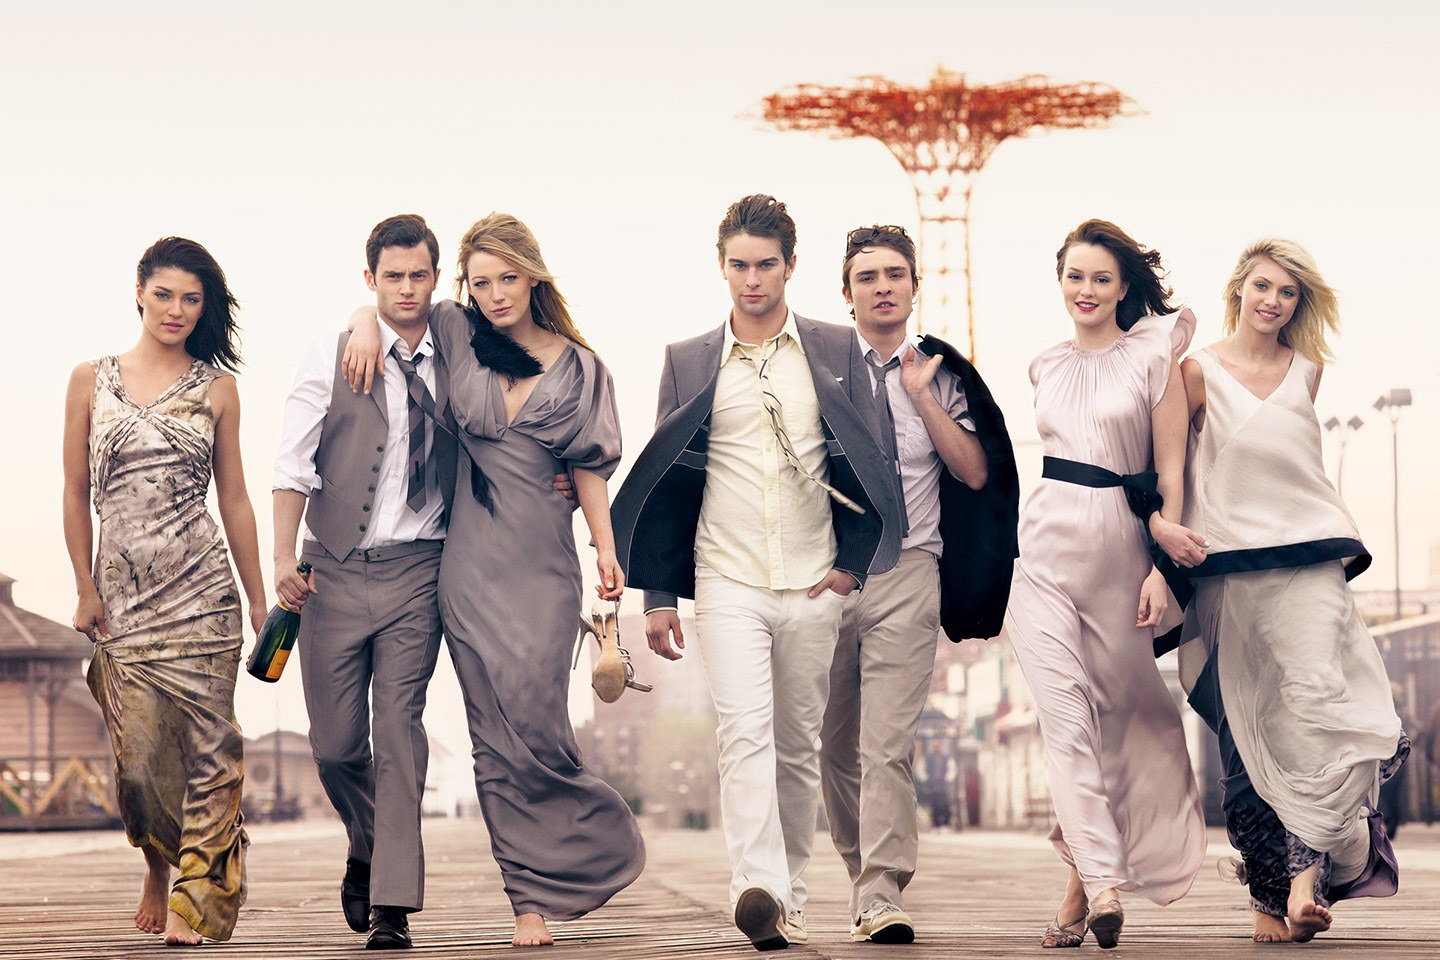 Gossip Girl: actors and roles. What do actors have in common with their characters